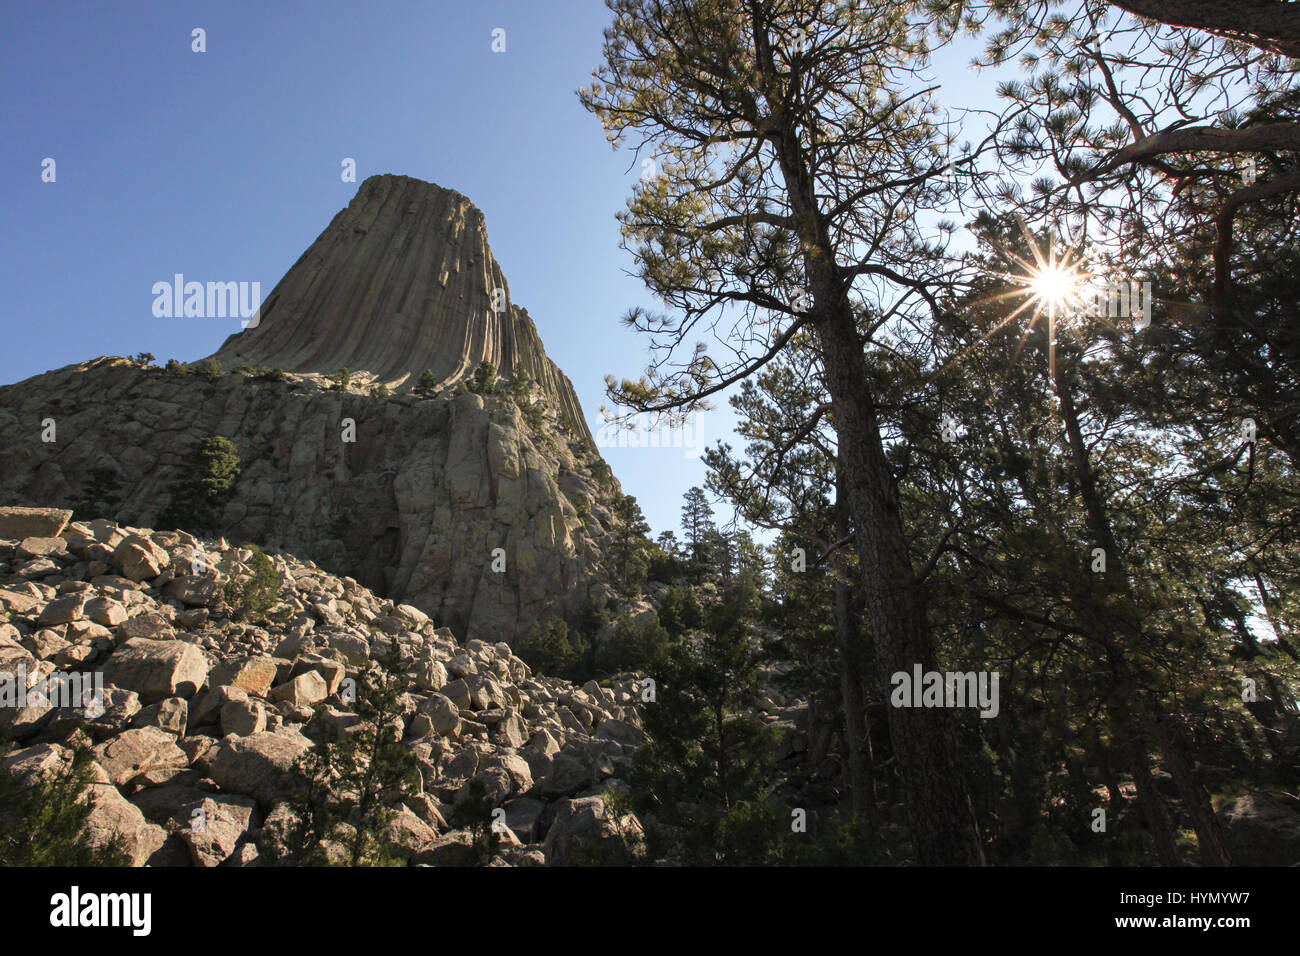 The sun shines through trees next to Devils Tower National Monument, an igneous rock formation. - Stock Image